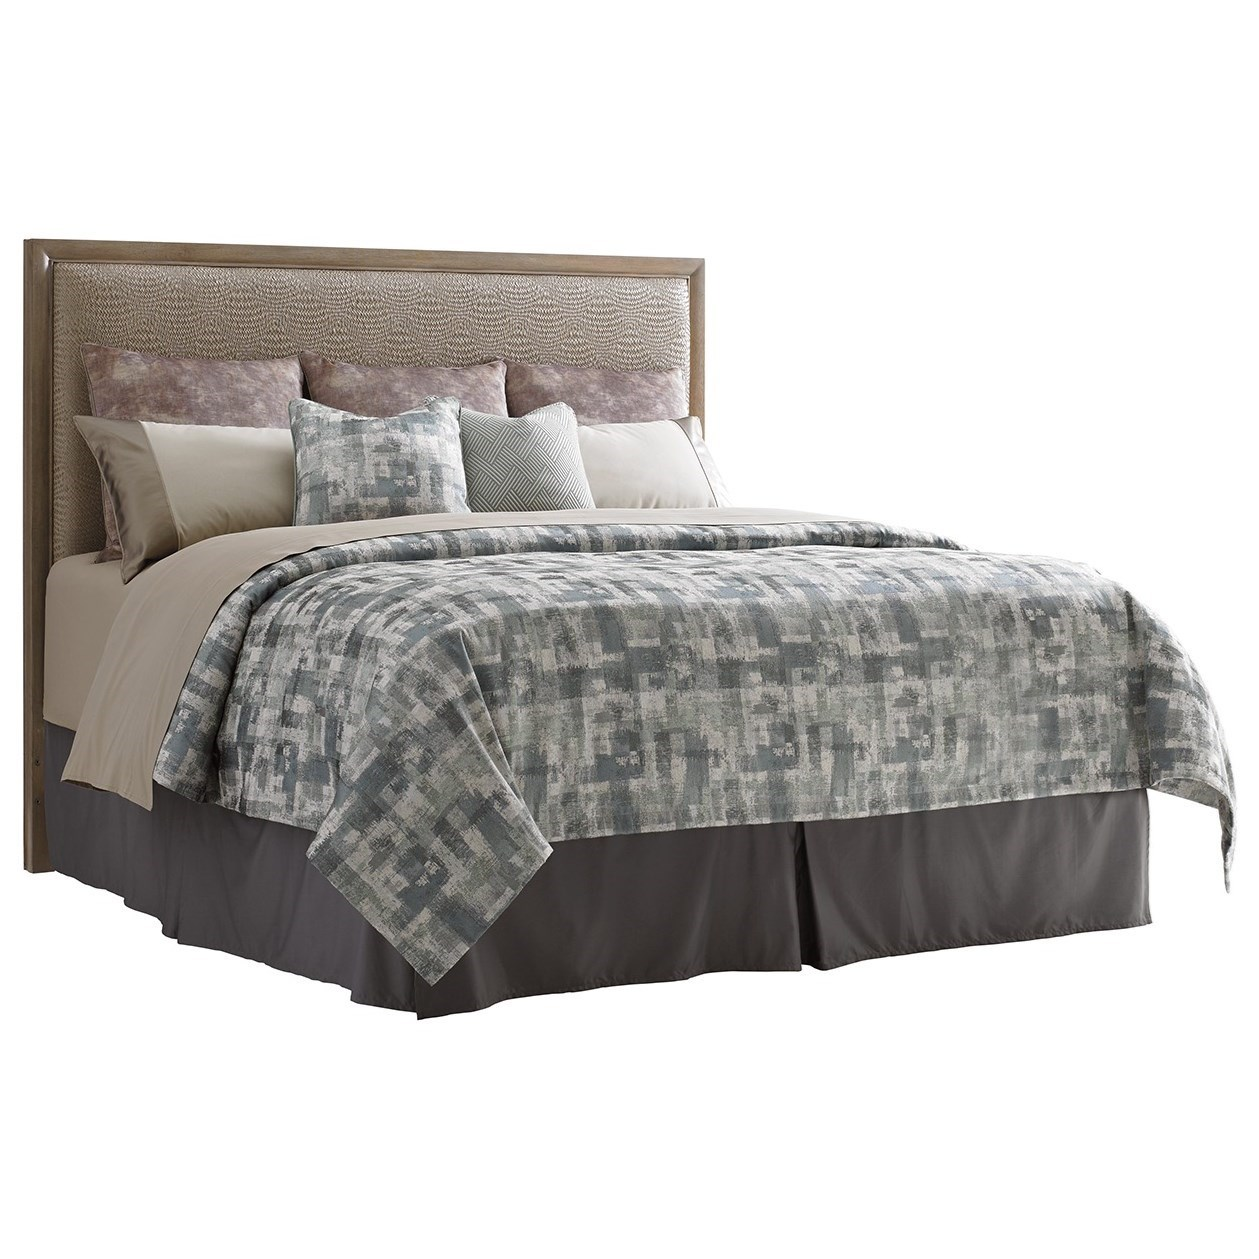 Lexington Shadow Play Uptown Panel Headboard 6/6 King - Item Number: 725-134HB